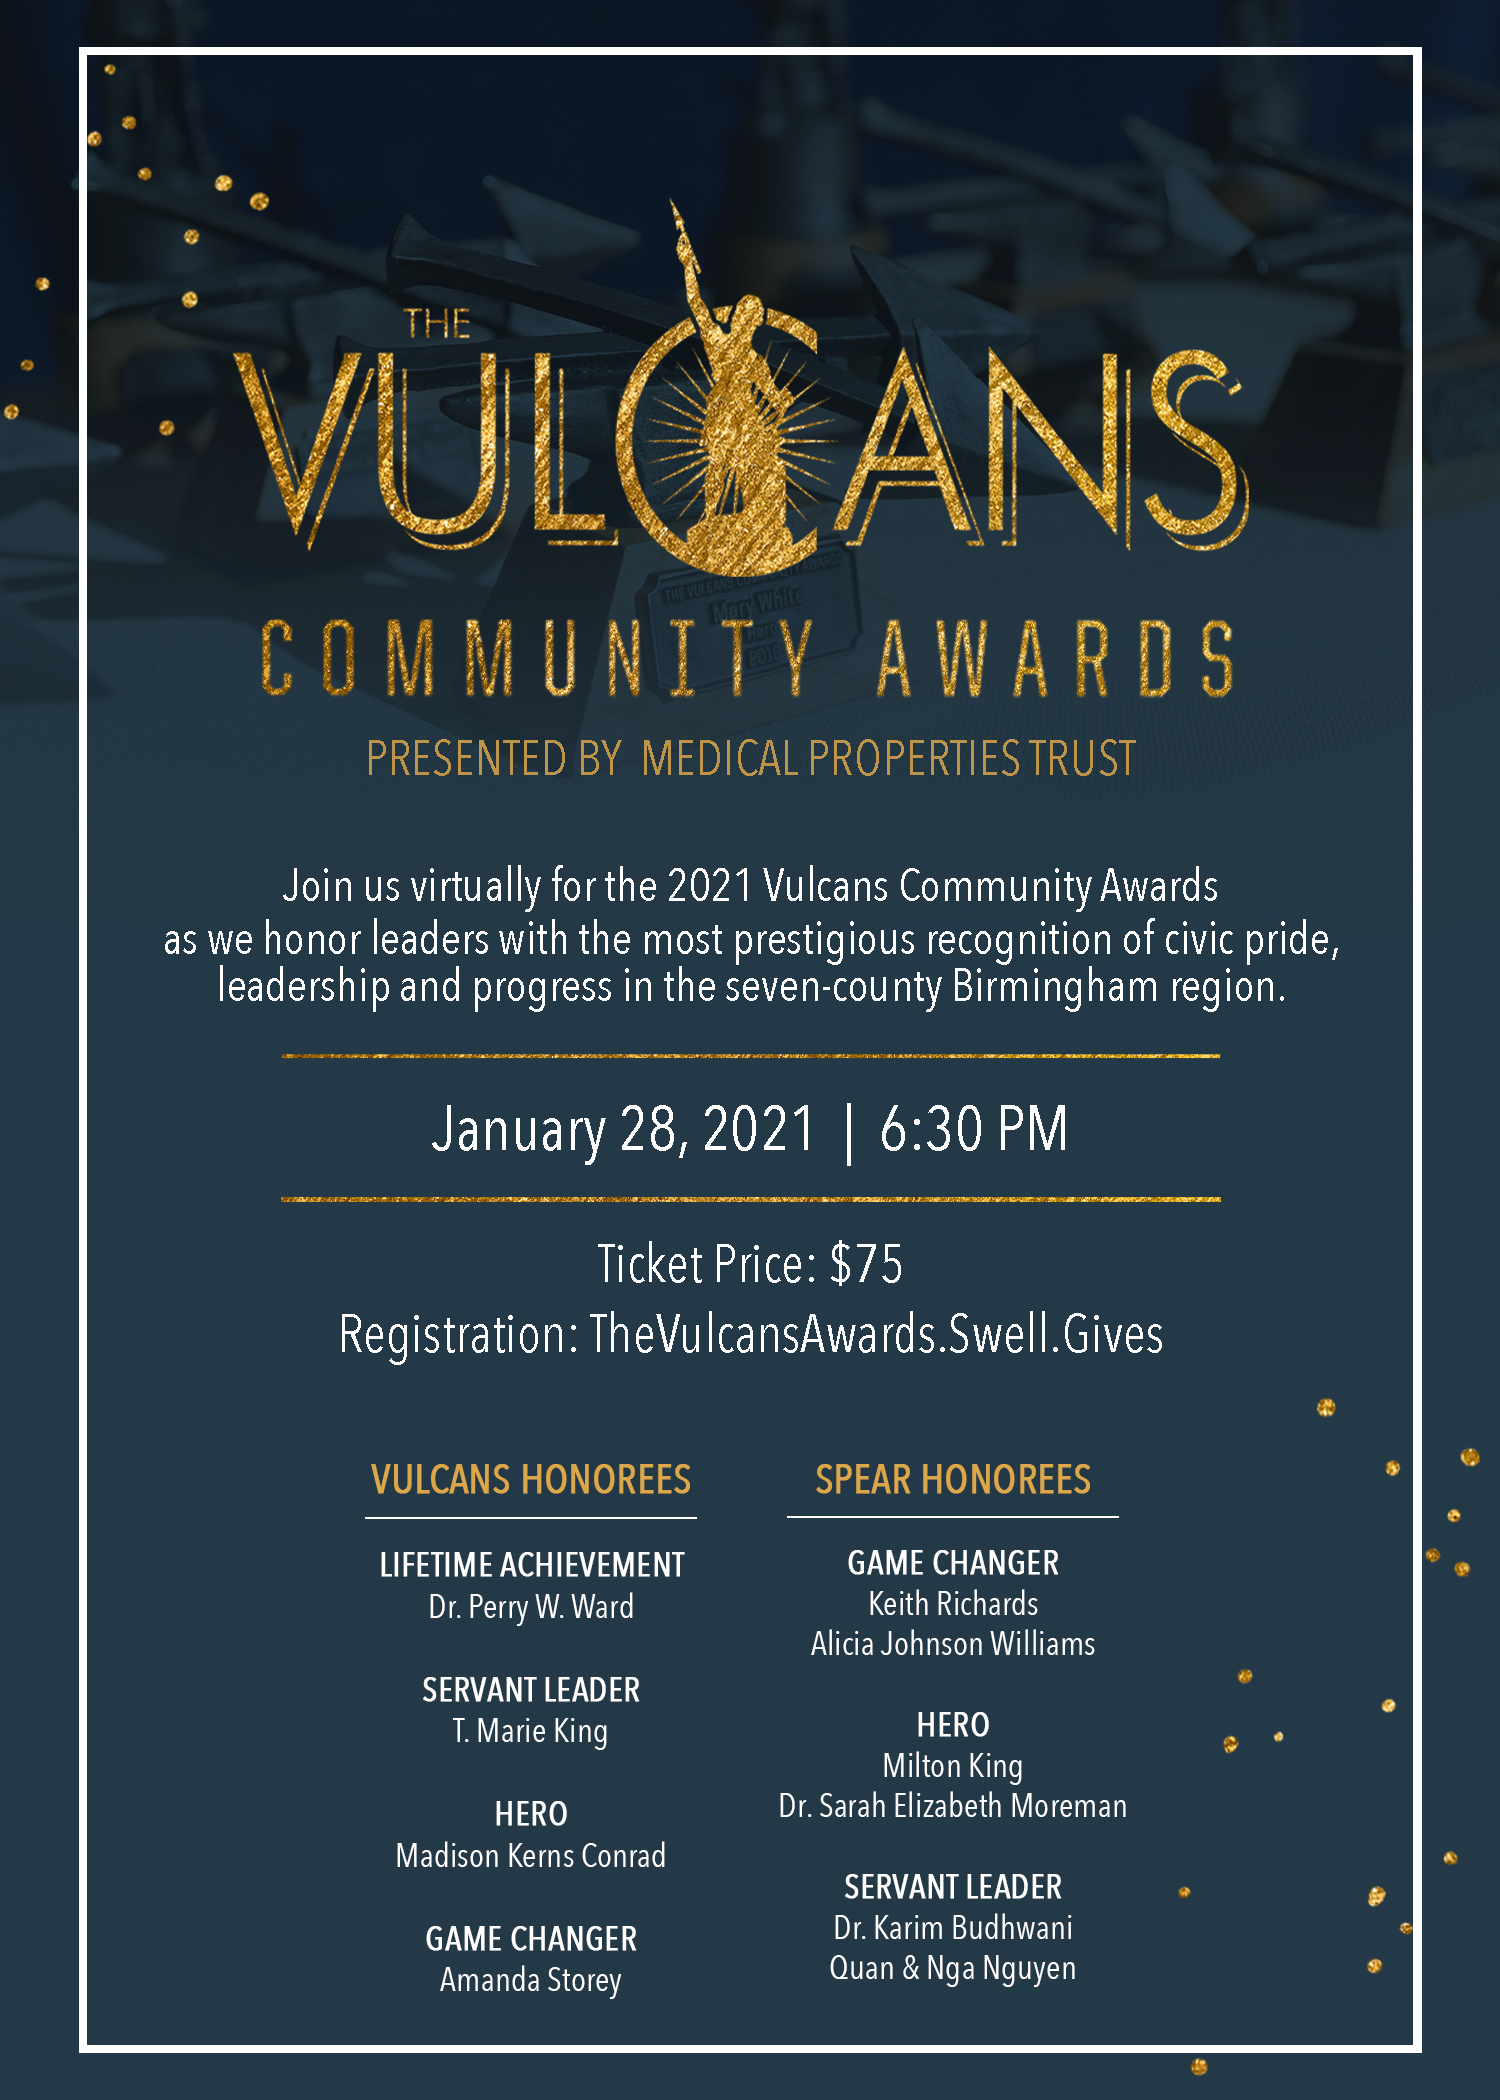 The Vulcans Community Awards Presented By Medical Properties Trust